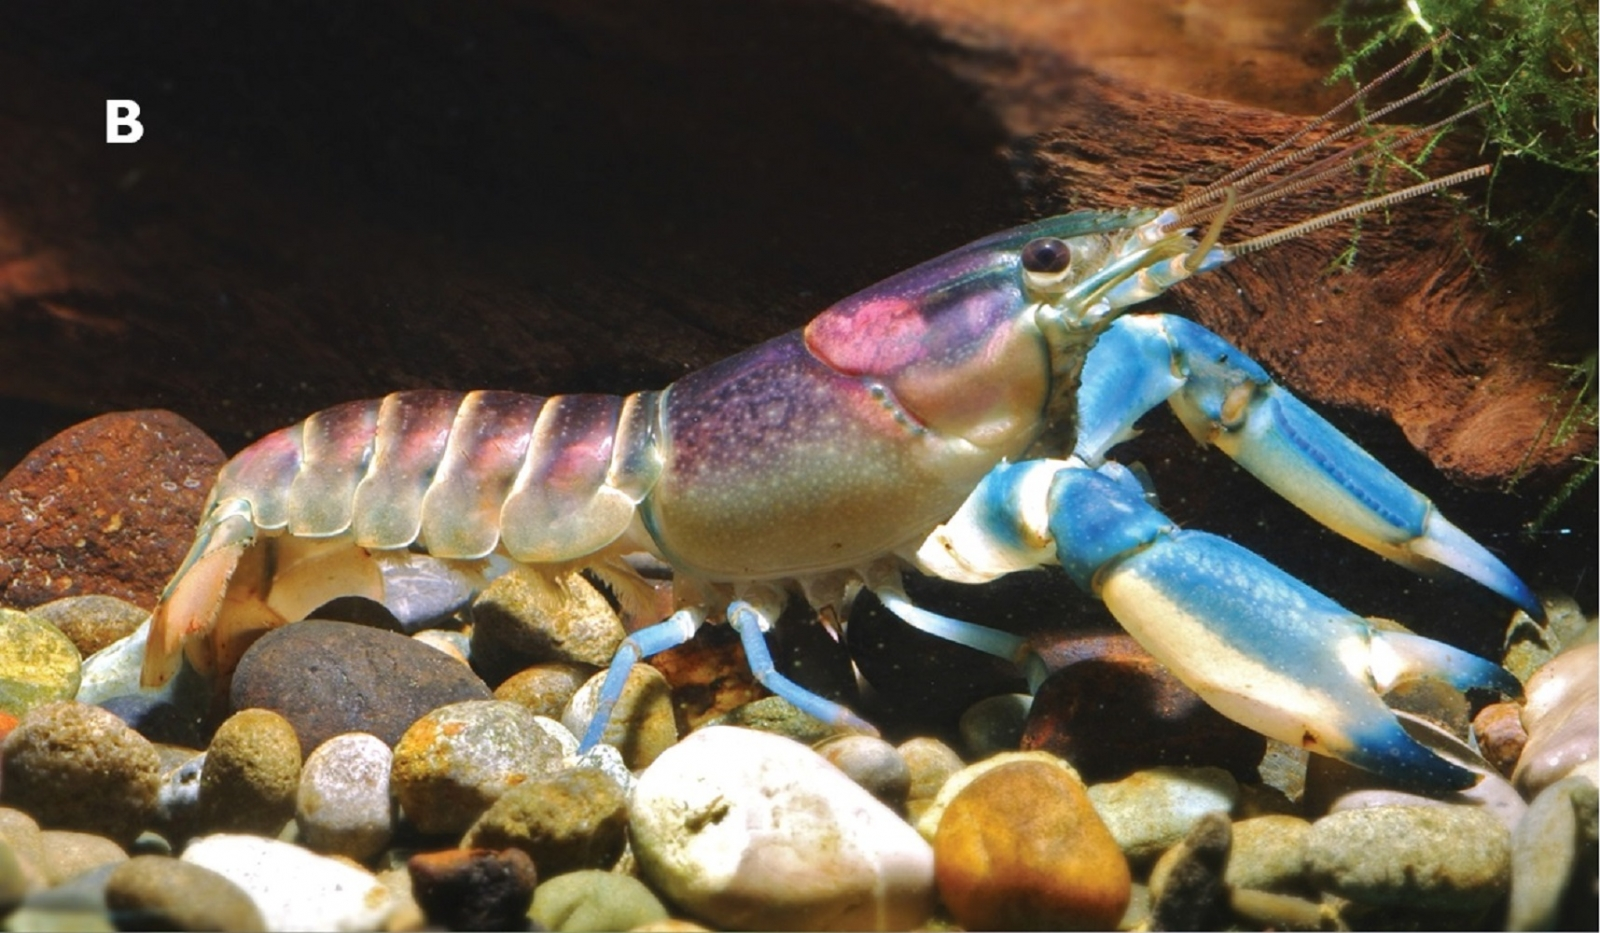 blue and pink crayfish species